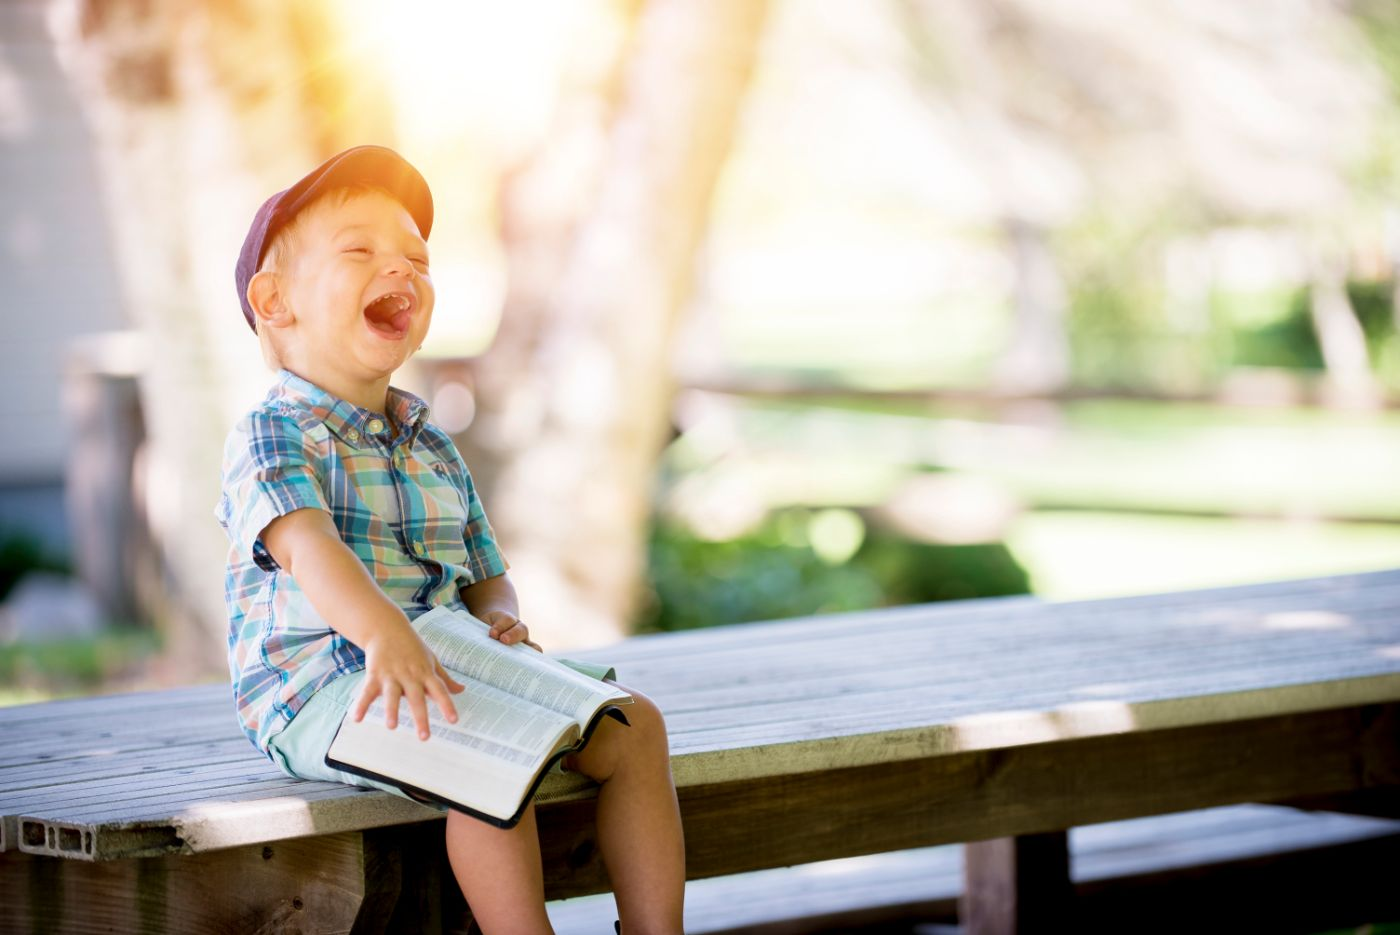 A kid reading and laughing on a bench